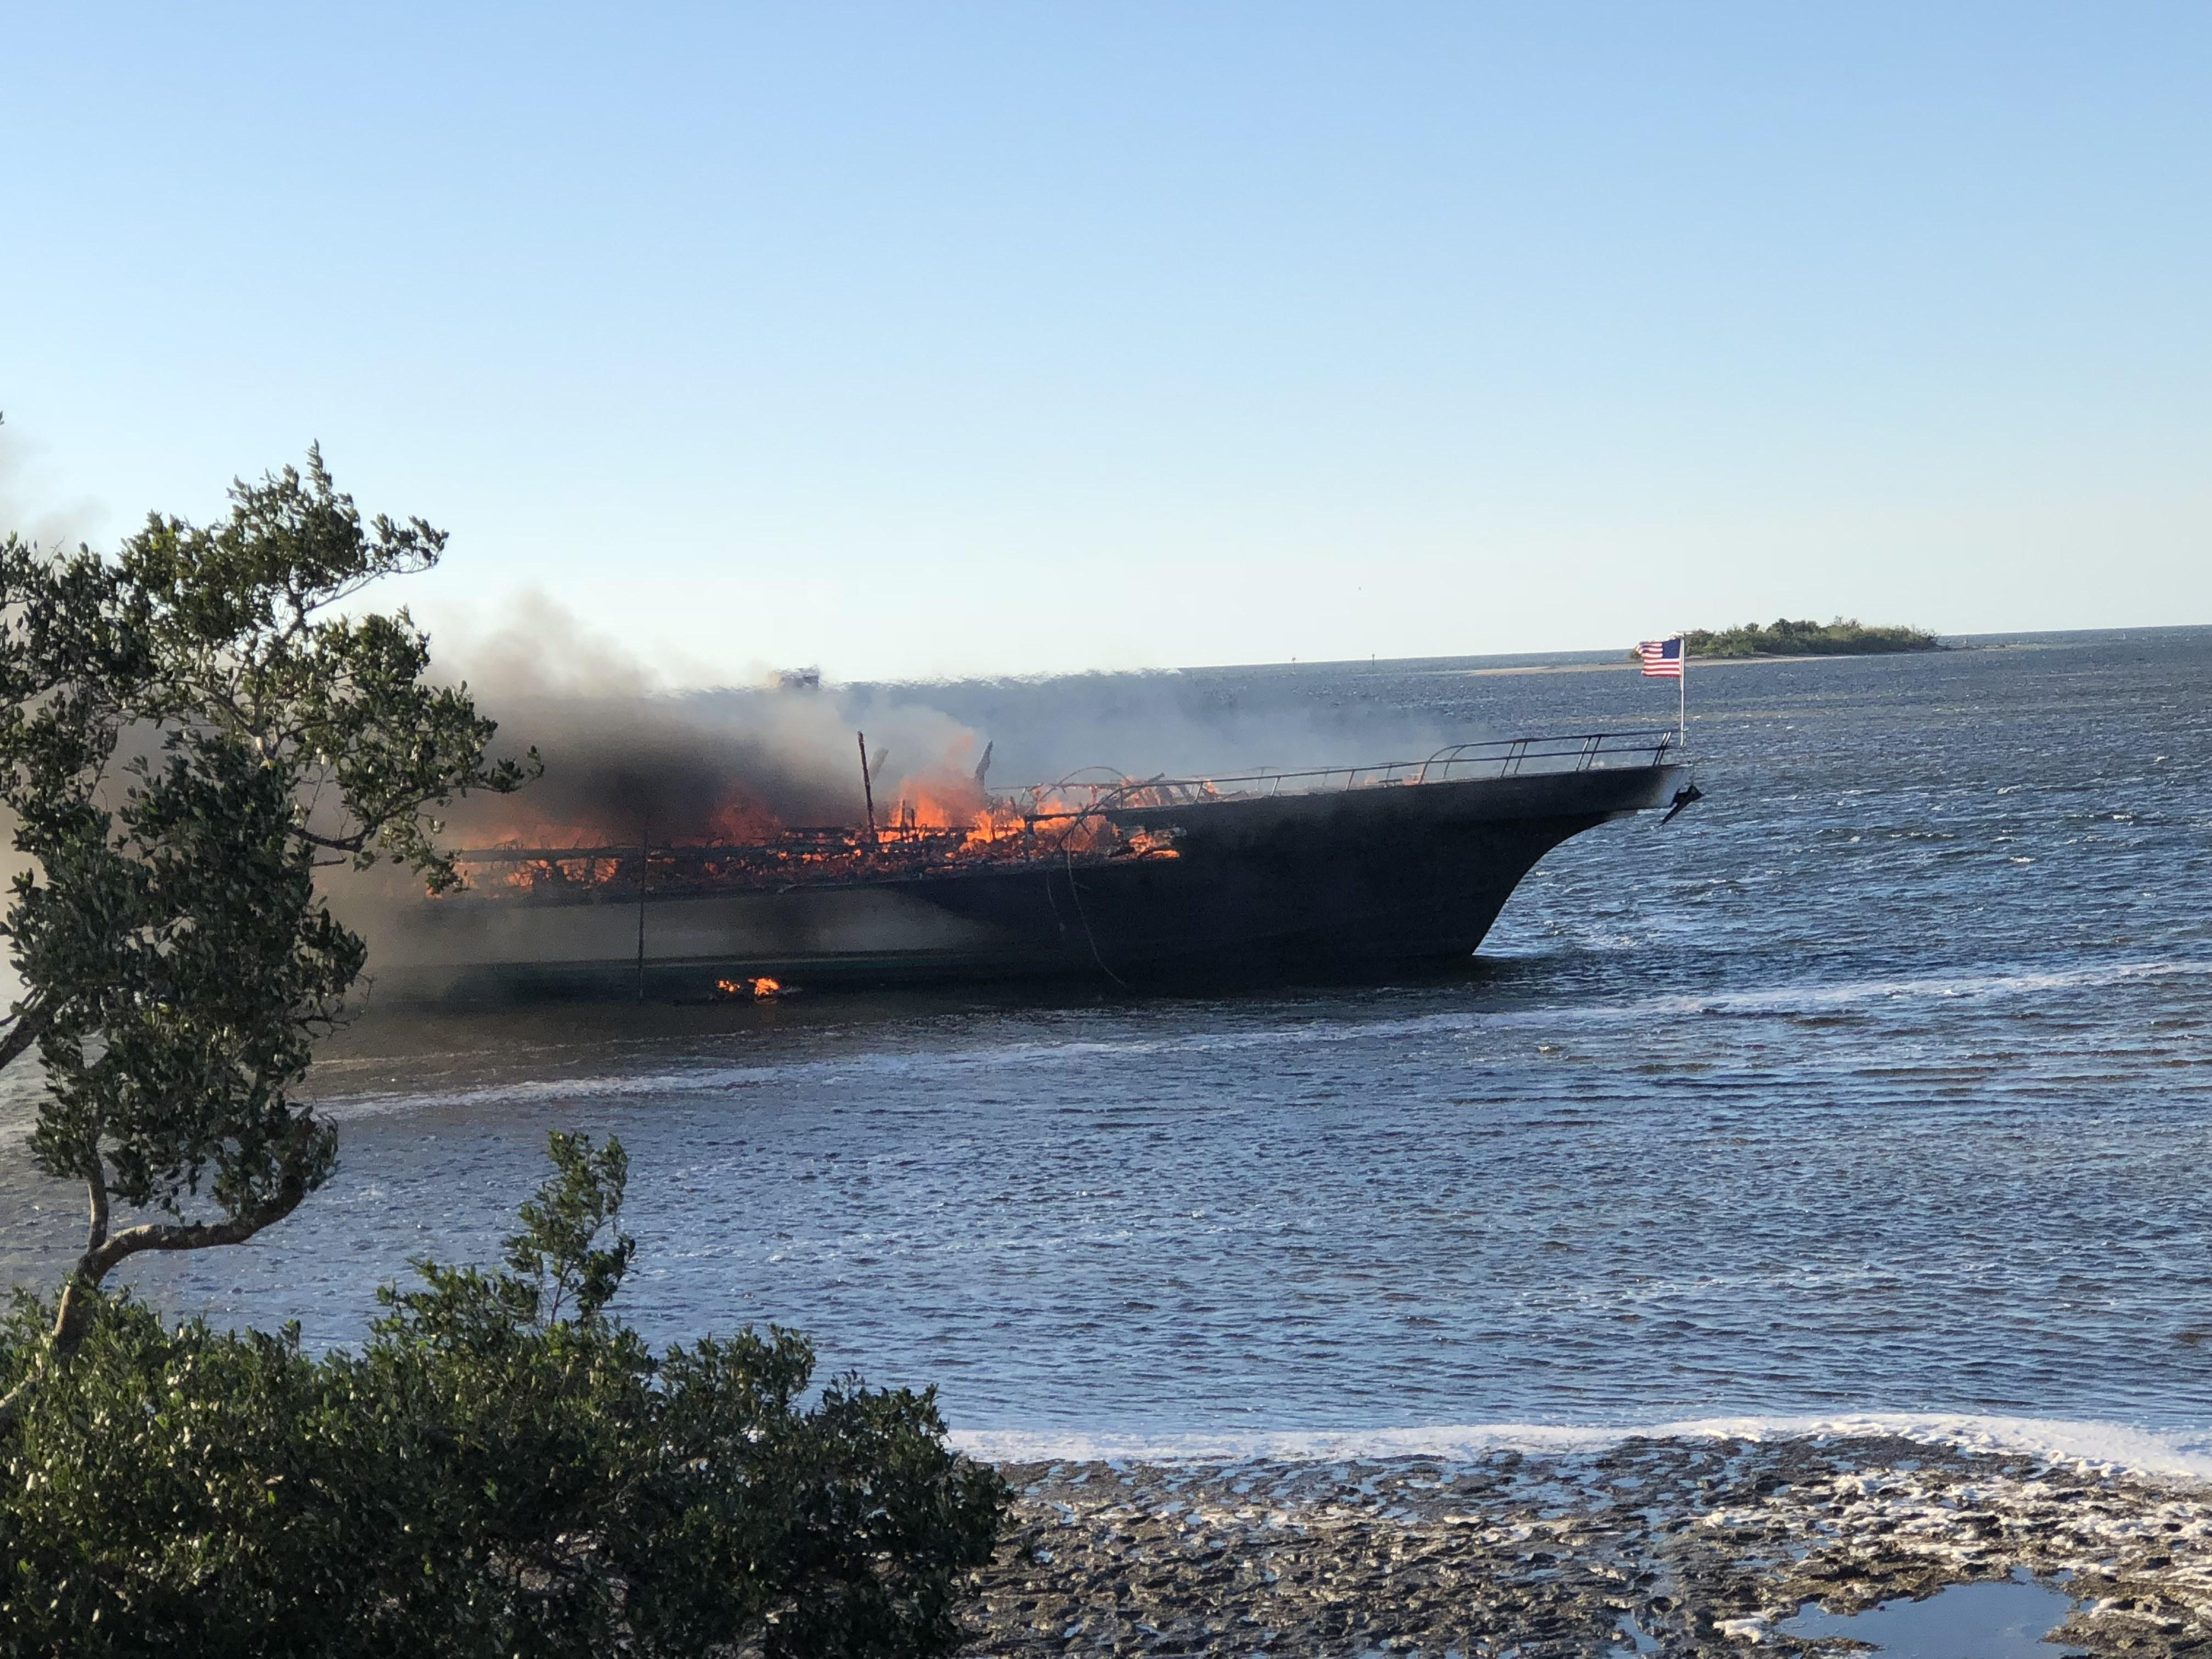 Crews Rescue Pengers After Boat Catches Fire In Florida